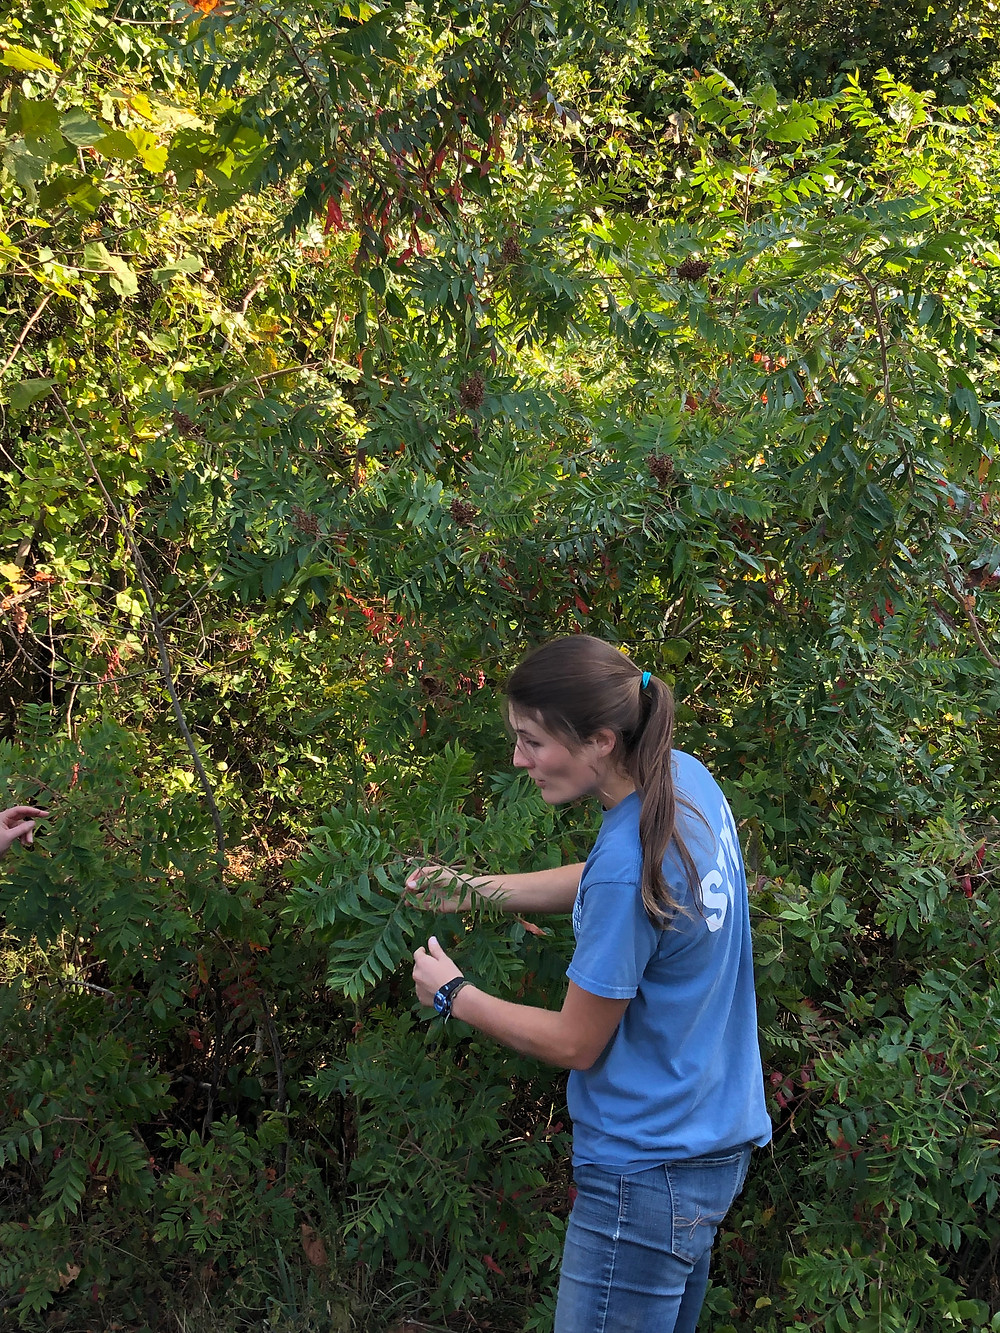 Our guide pulls berries off a sumac tree.